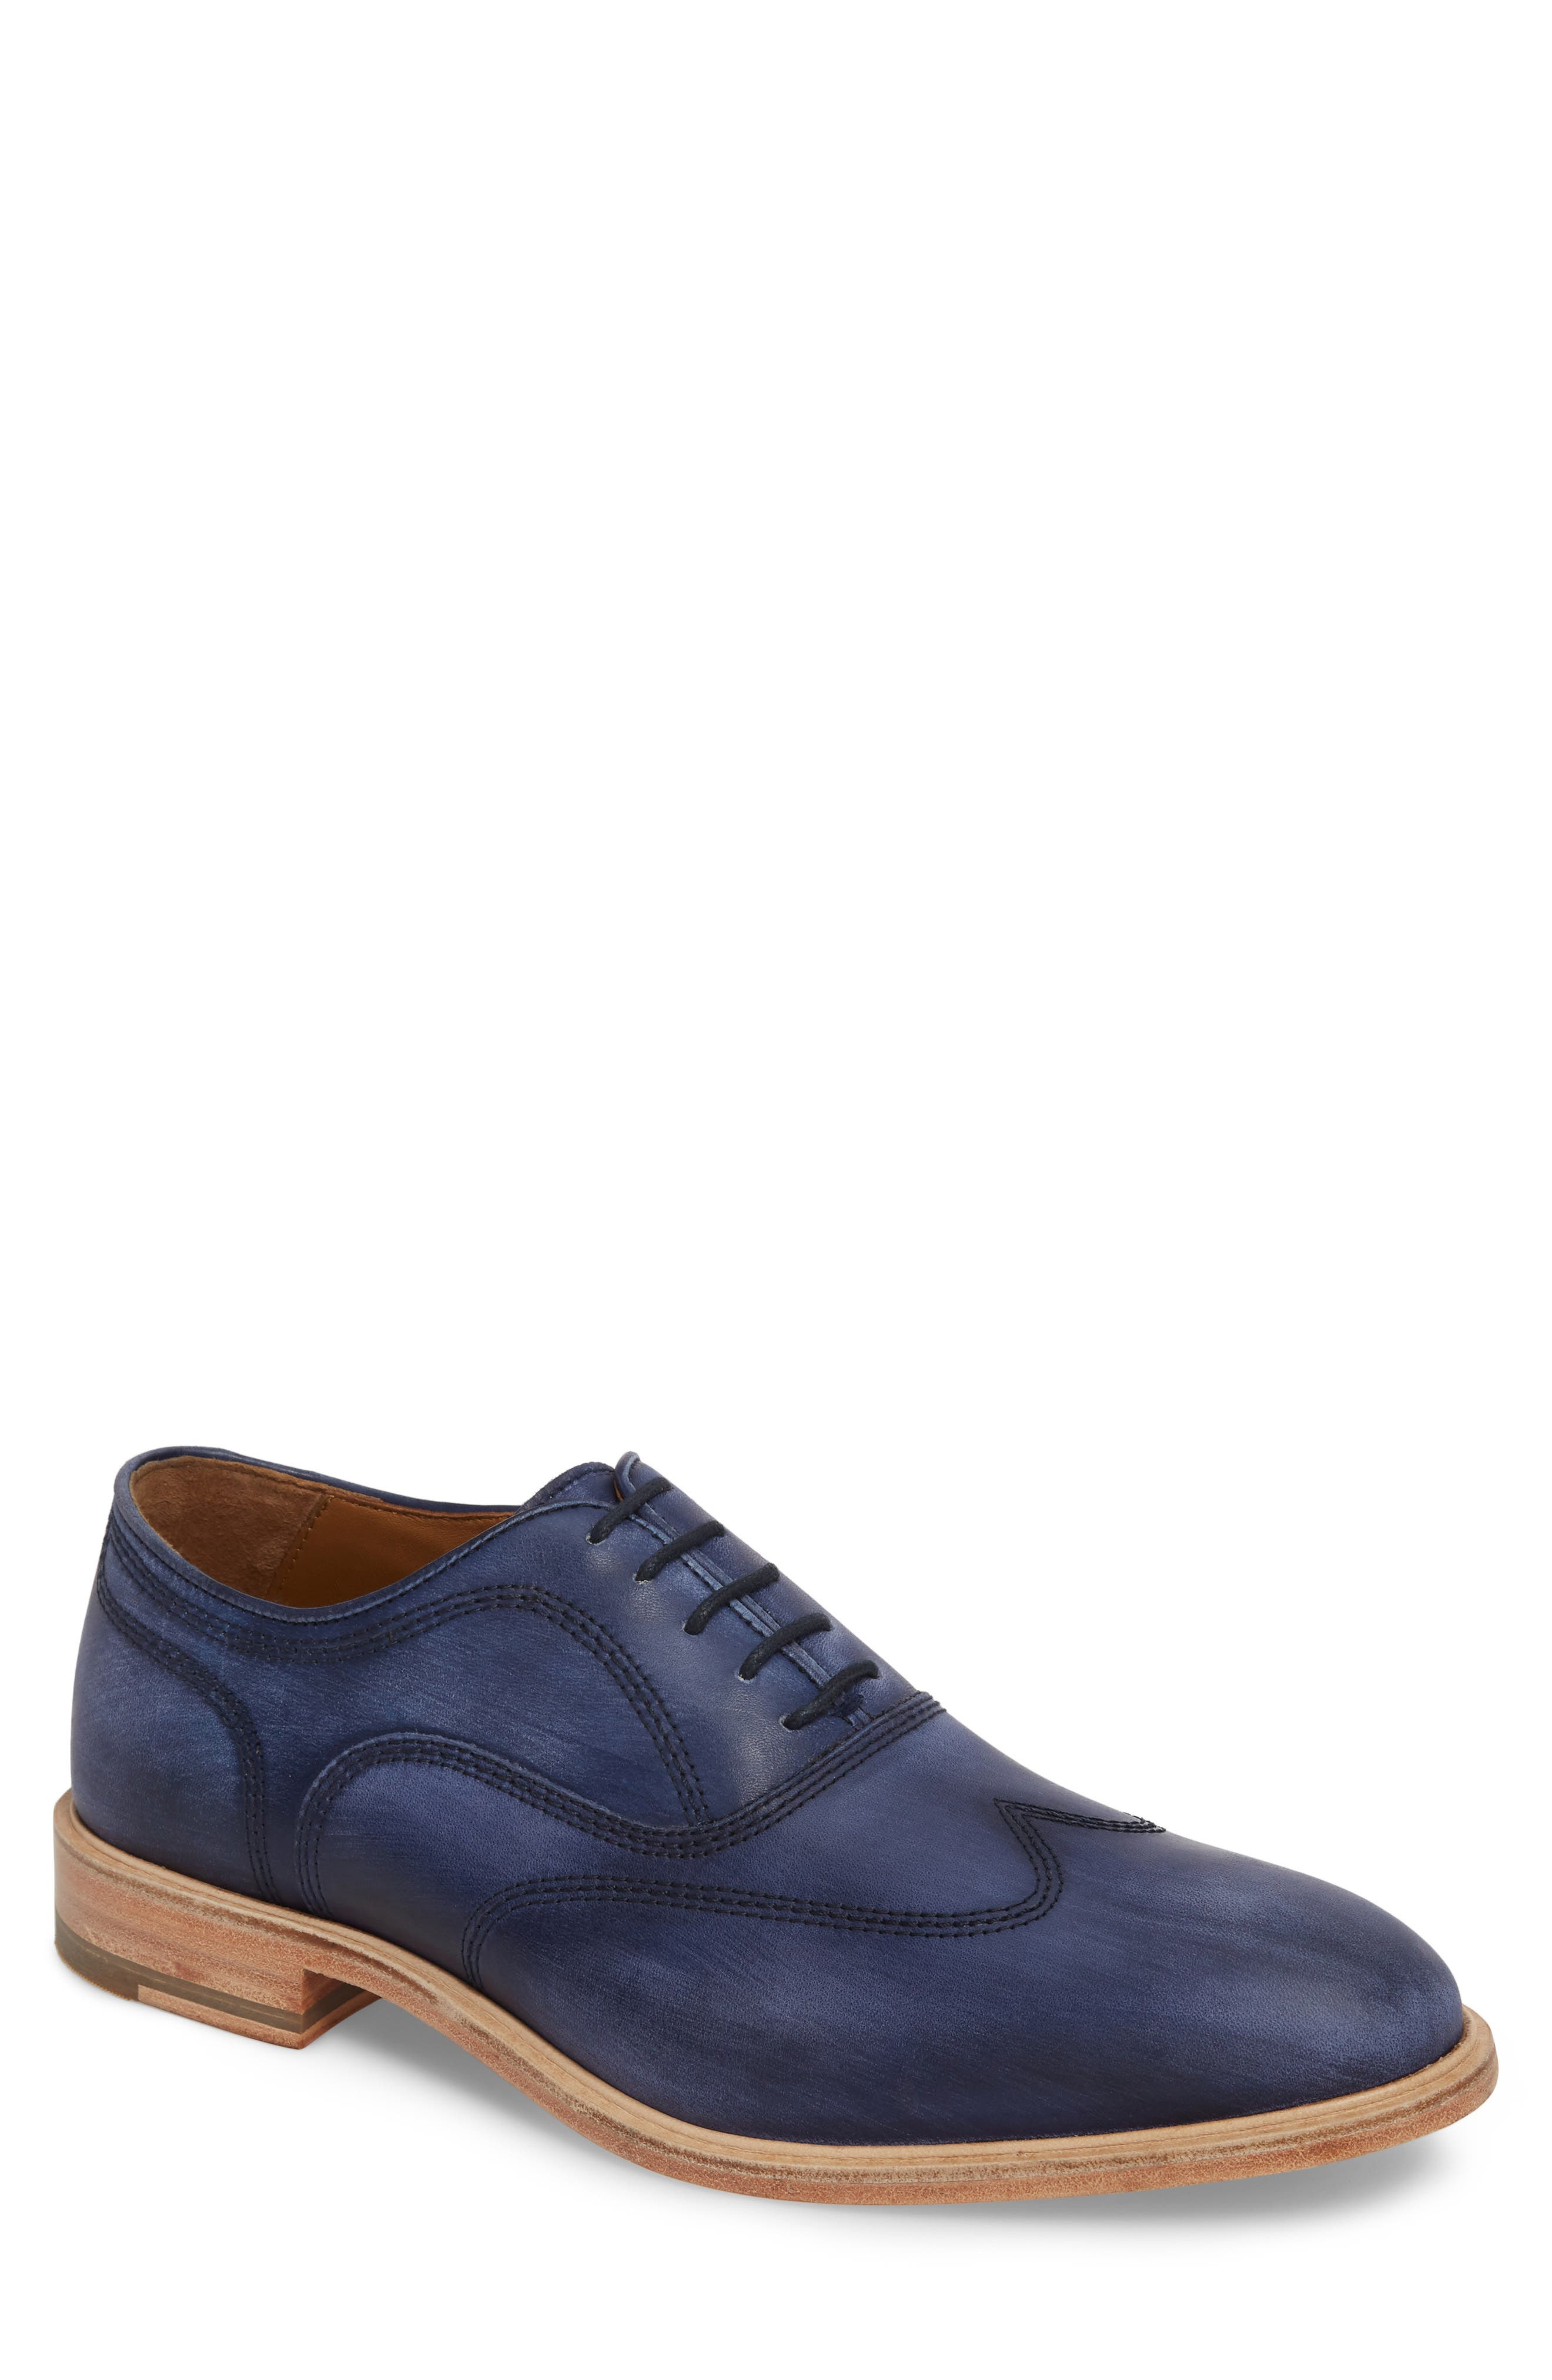 Chambliss Wingtip Oxford,                         Main,                         color, Navy Leather